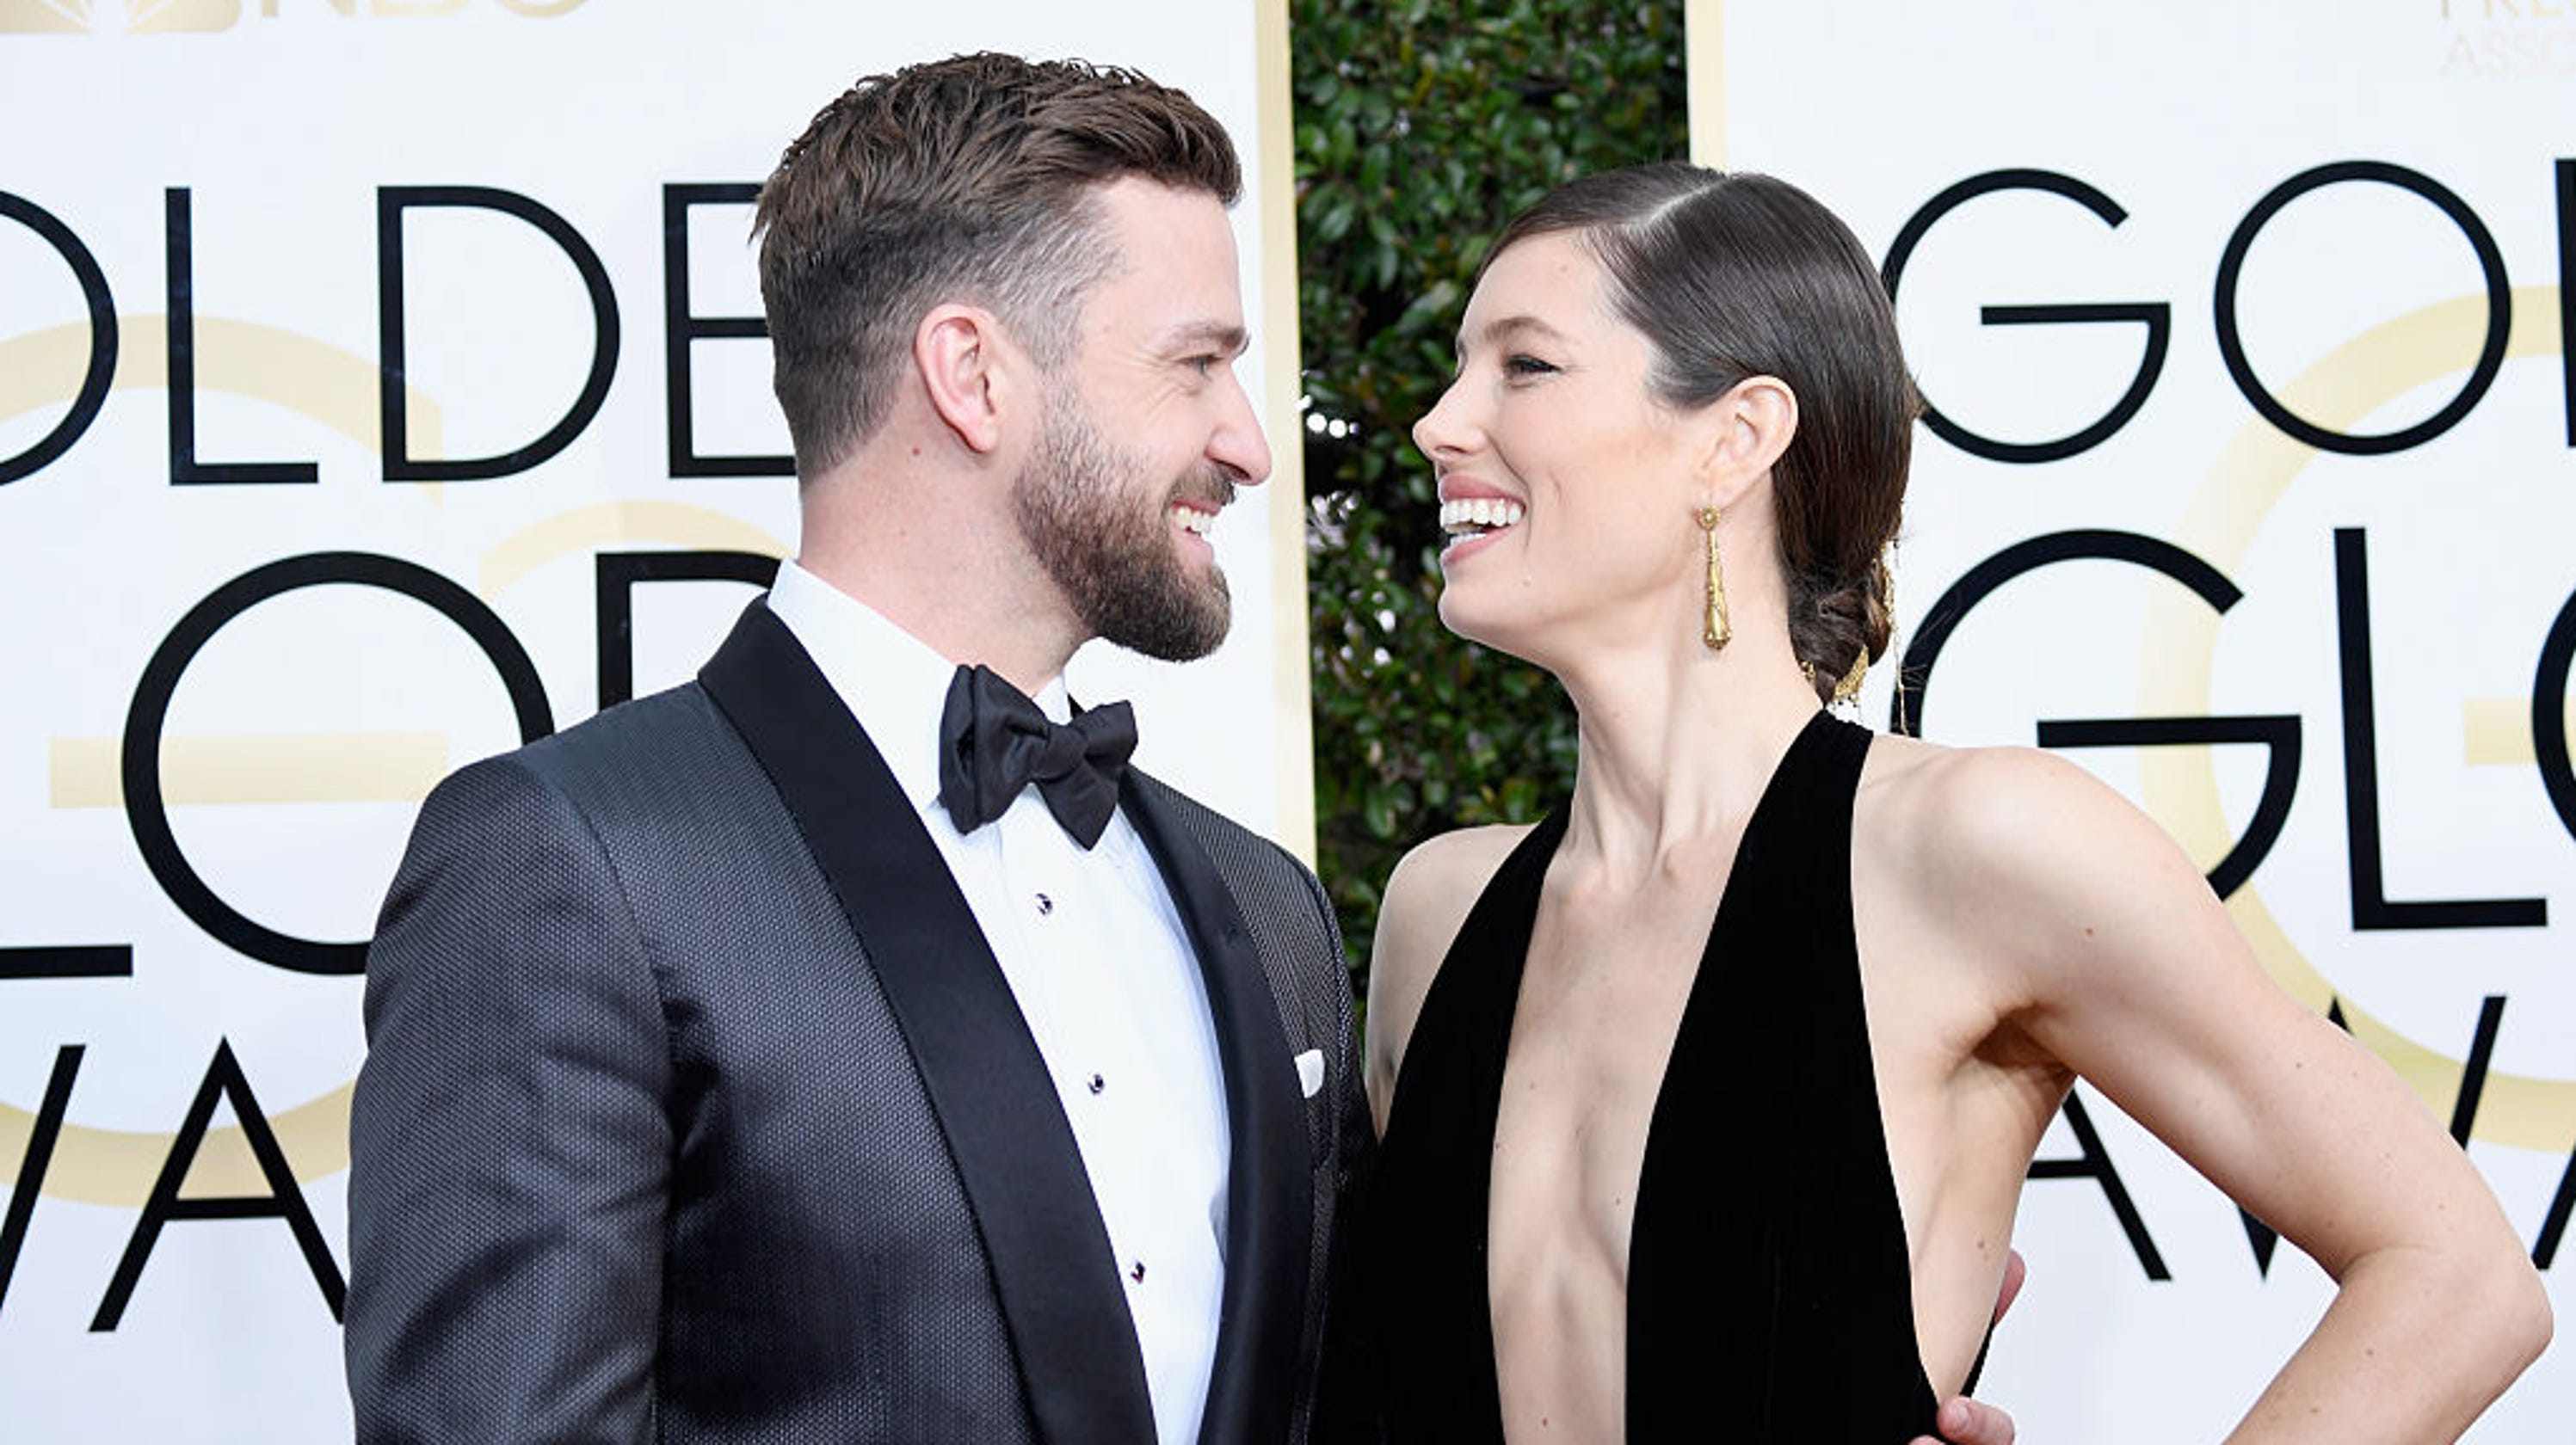 Jessica Biel's teary love video wrecks Justin Timberlake: 'I can't with this message'